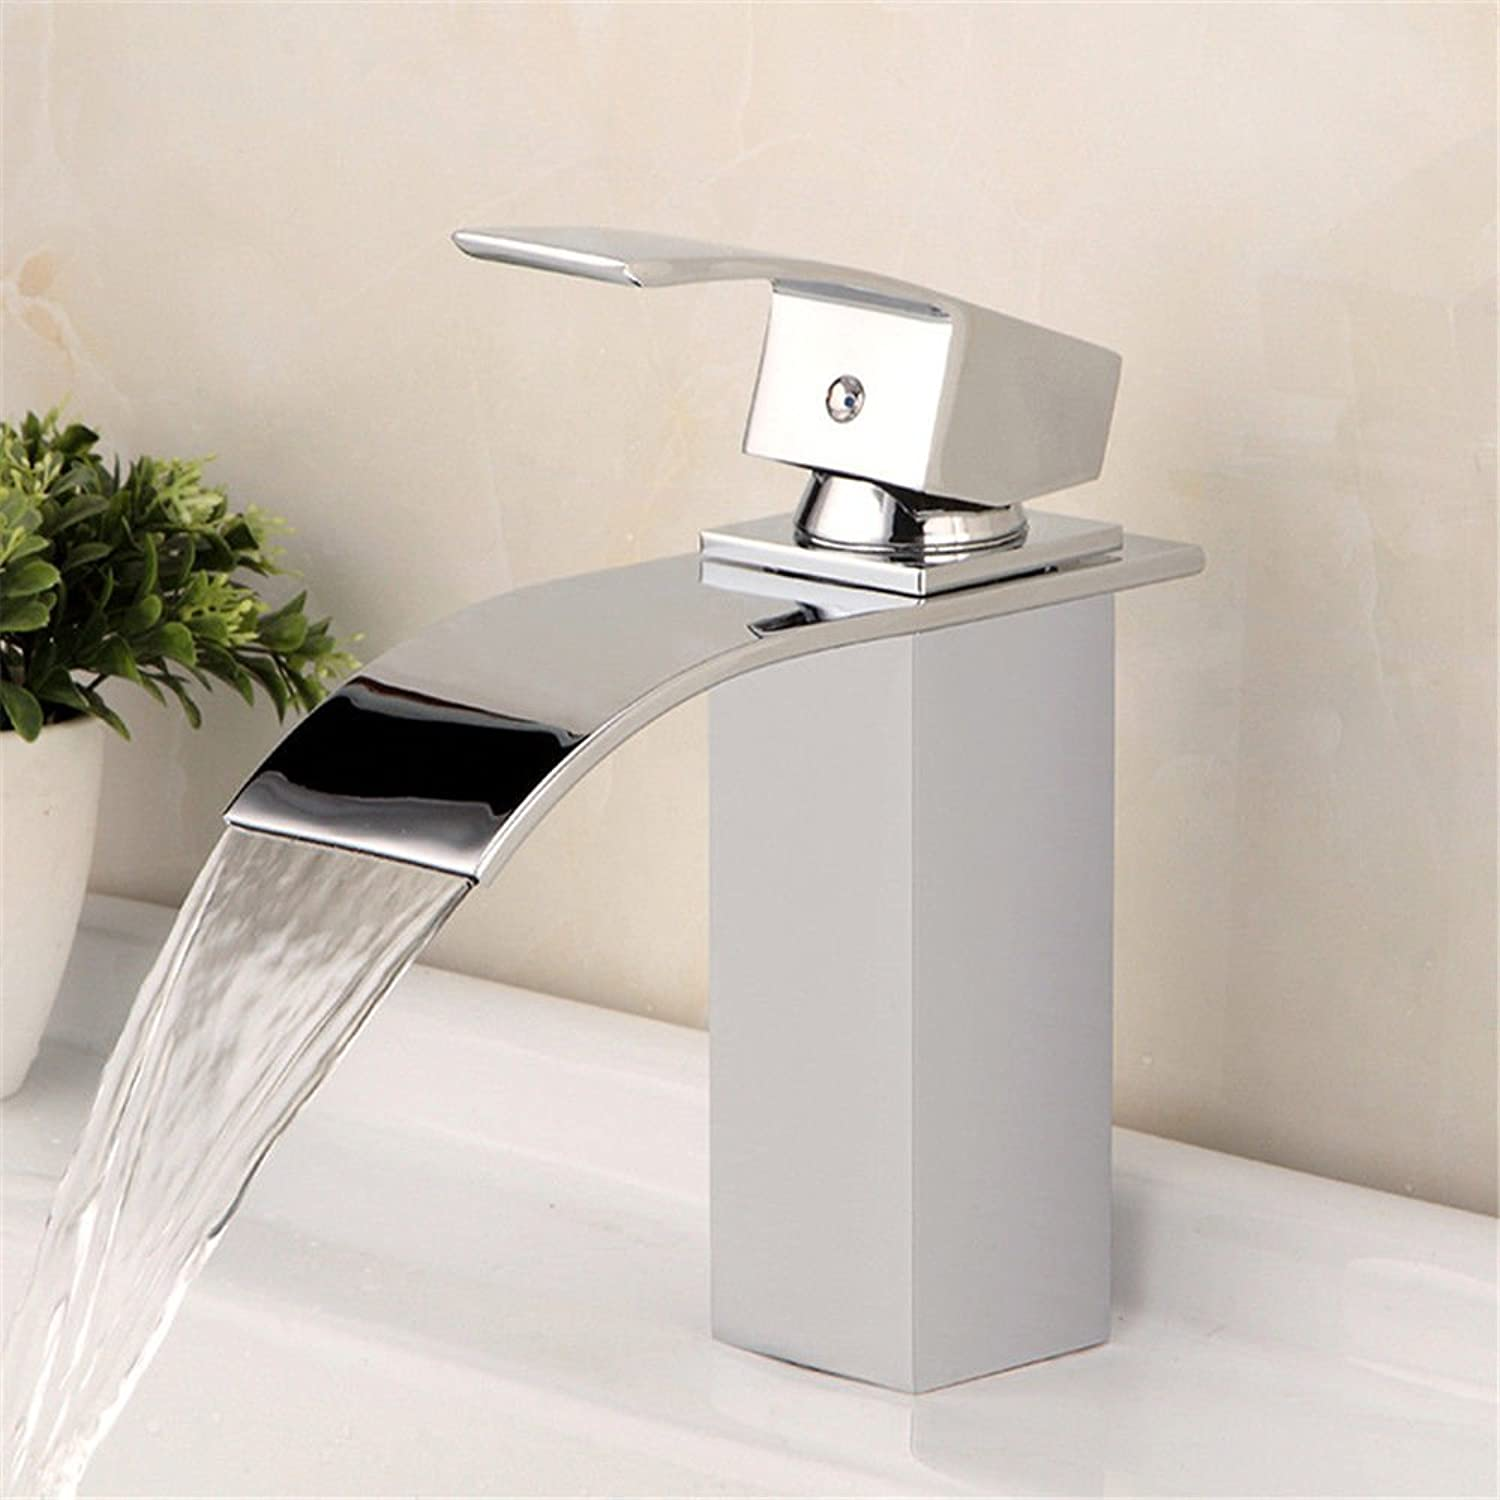 SADASD Modern Bathroom Basin Faucet Copper Sifang Fine Waterfall Washbasin Sink Taps Ceramic Valve Single Hole Single Handle Hot and Cold Mixer Tap With G1 2 Hose